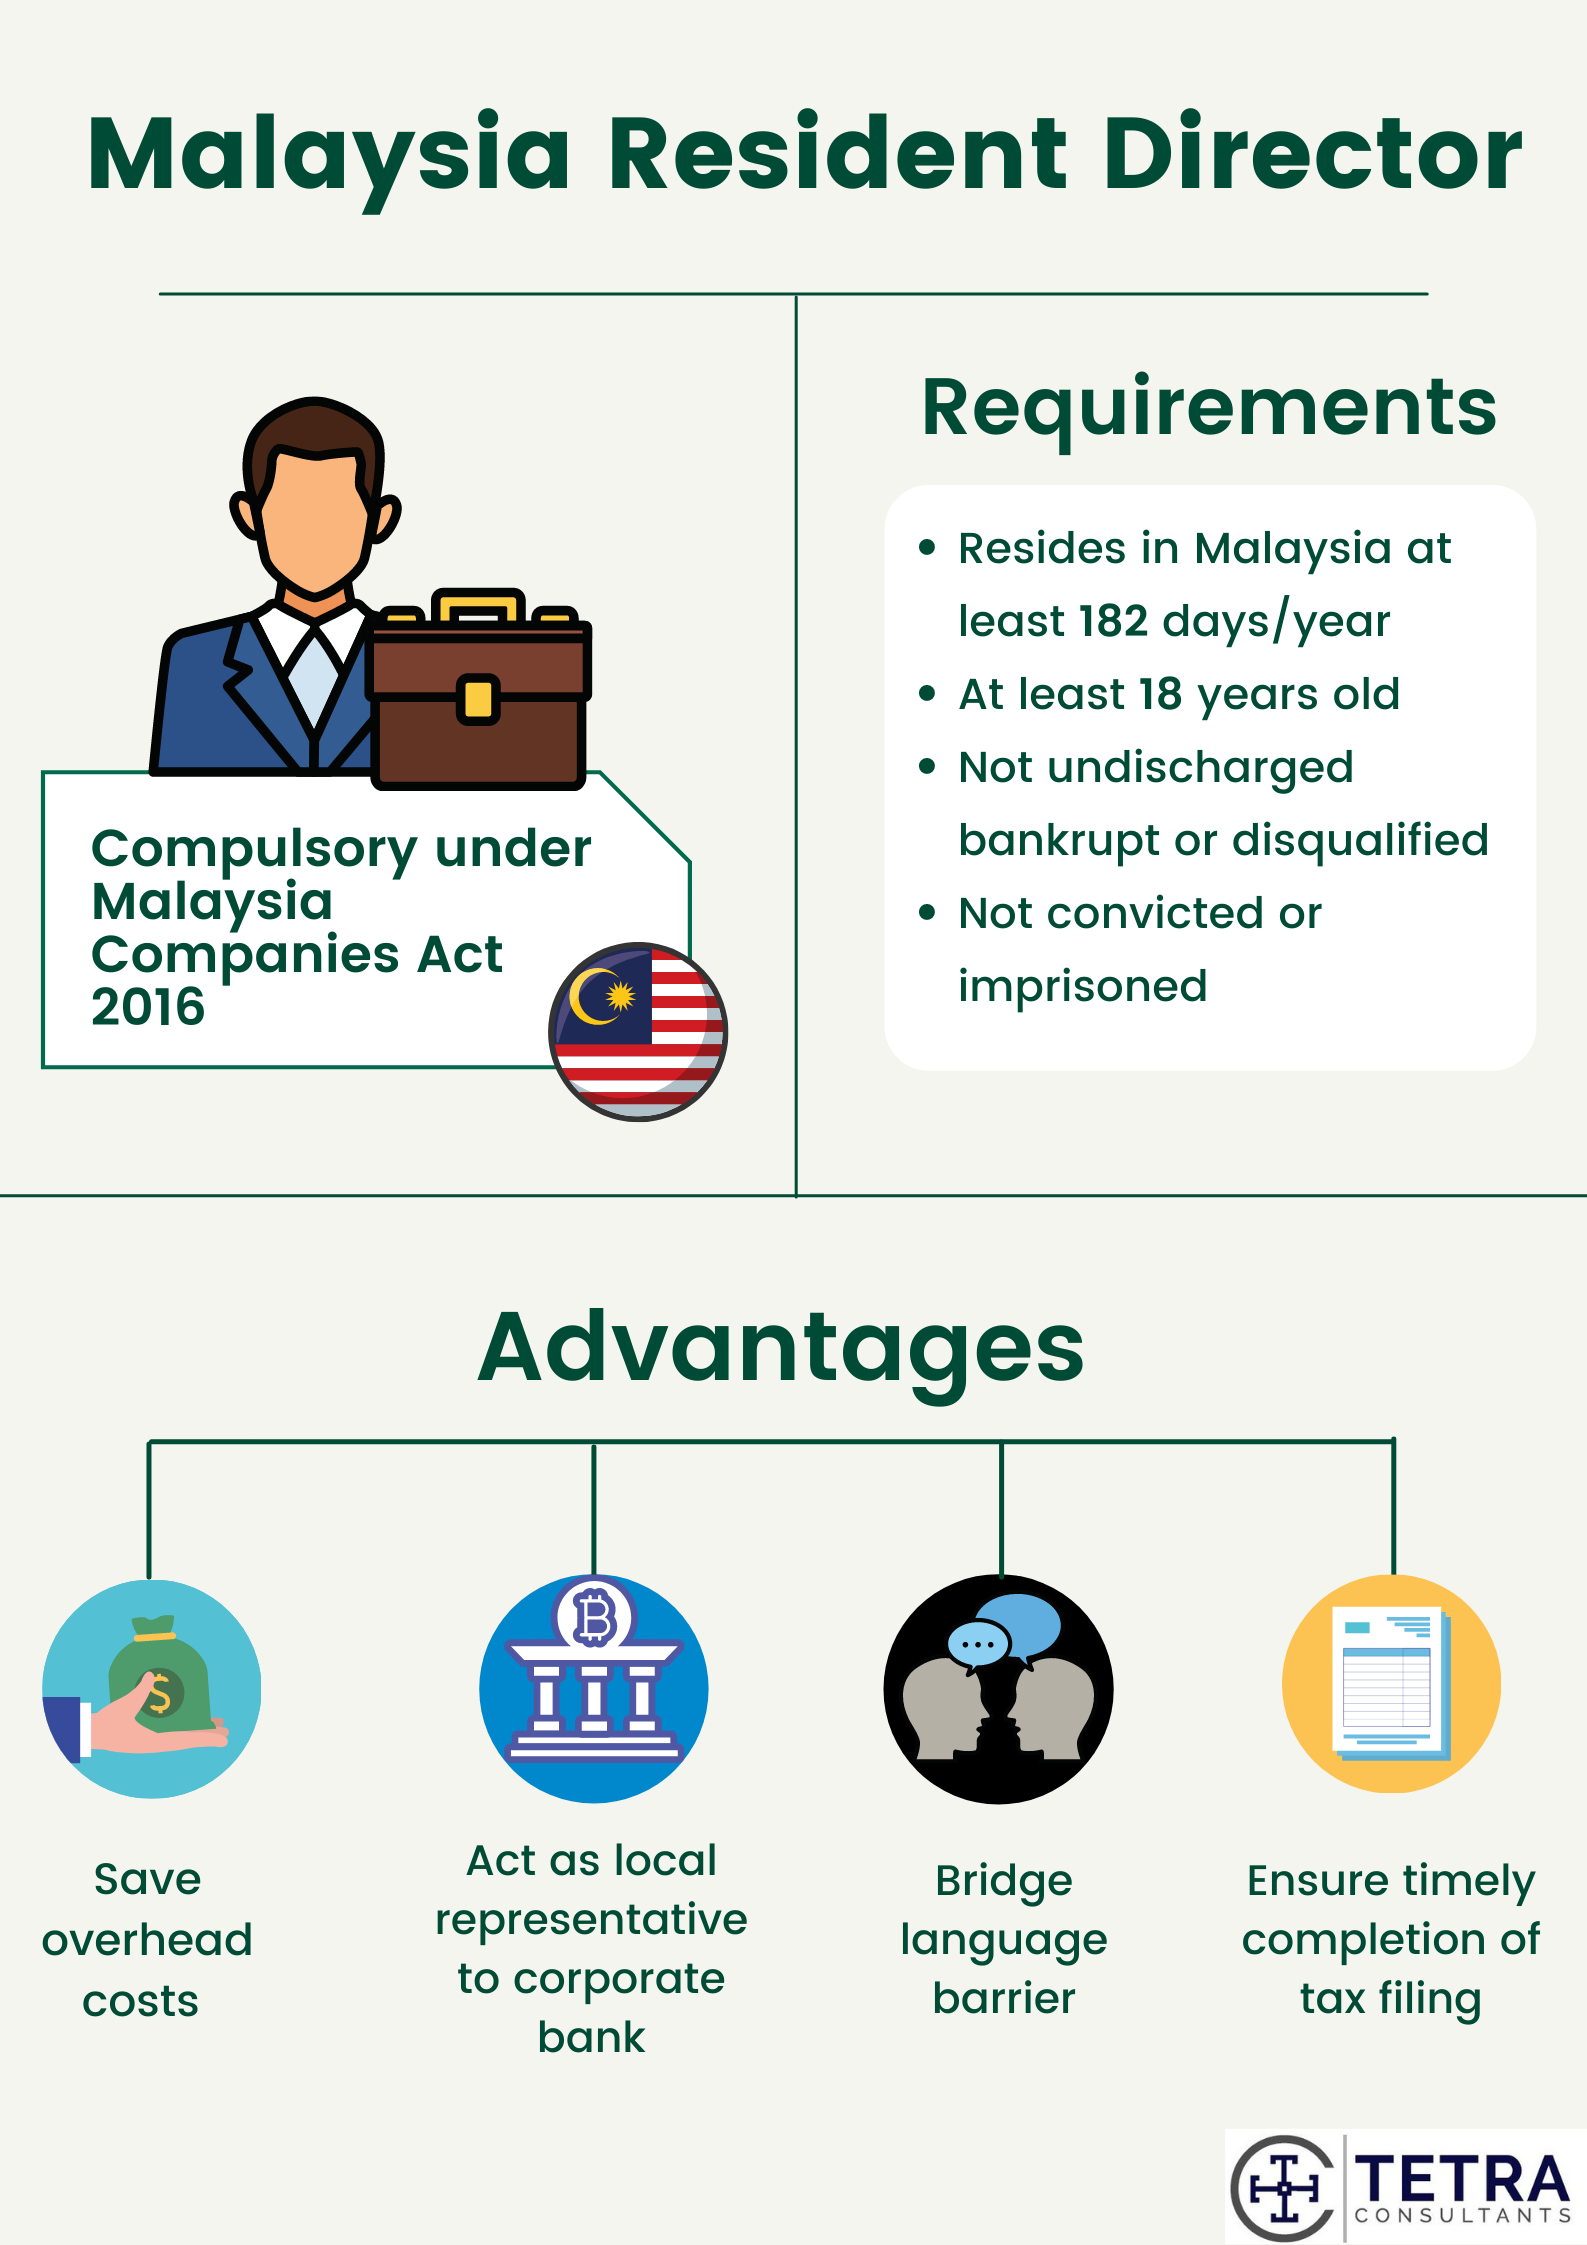 Requirements of Malaysia Resident Director